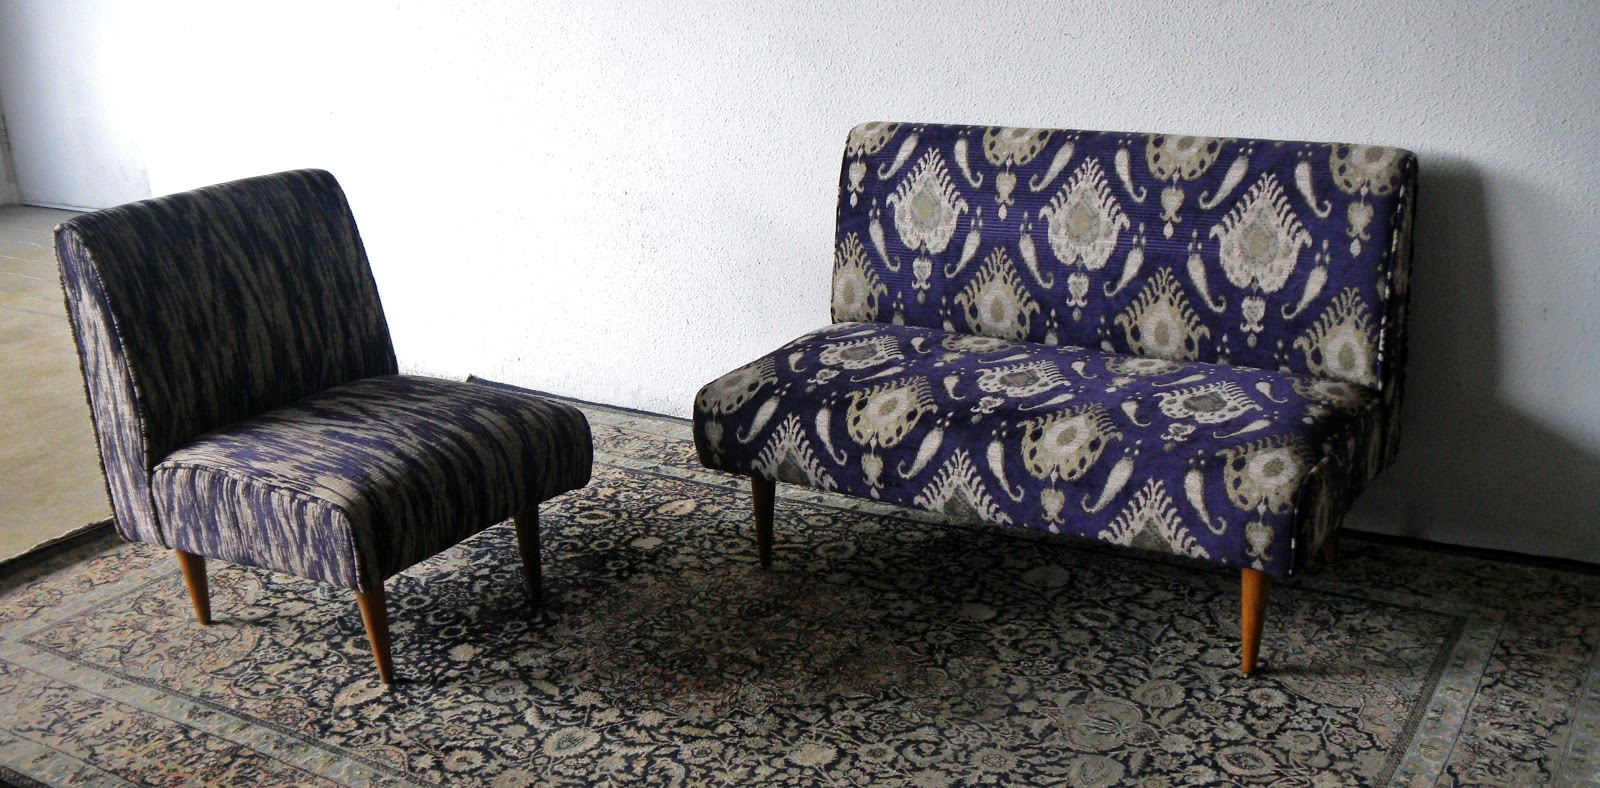 Second Charm Collections The Beauty Of Ikat And Silk Upholstery